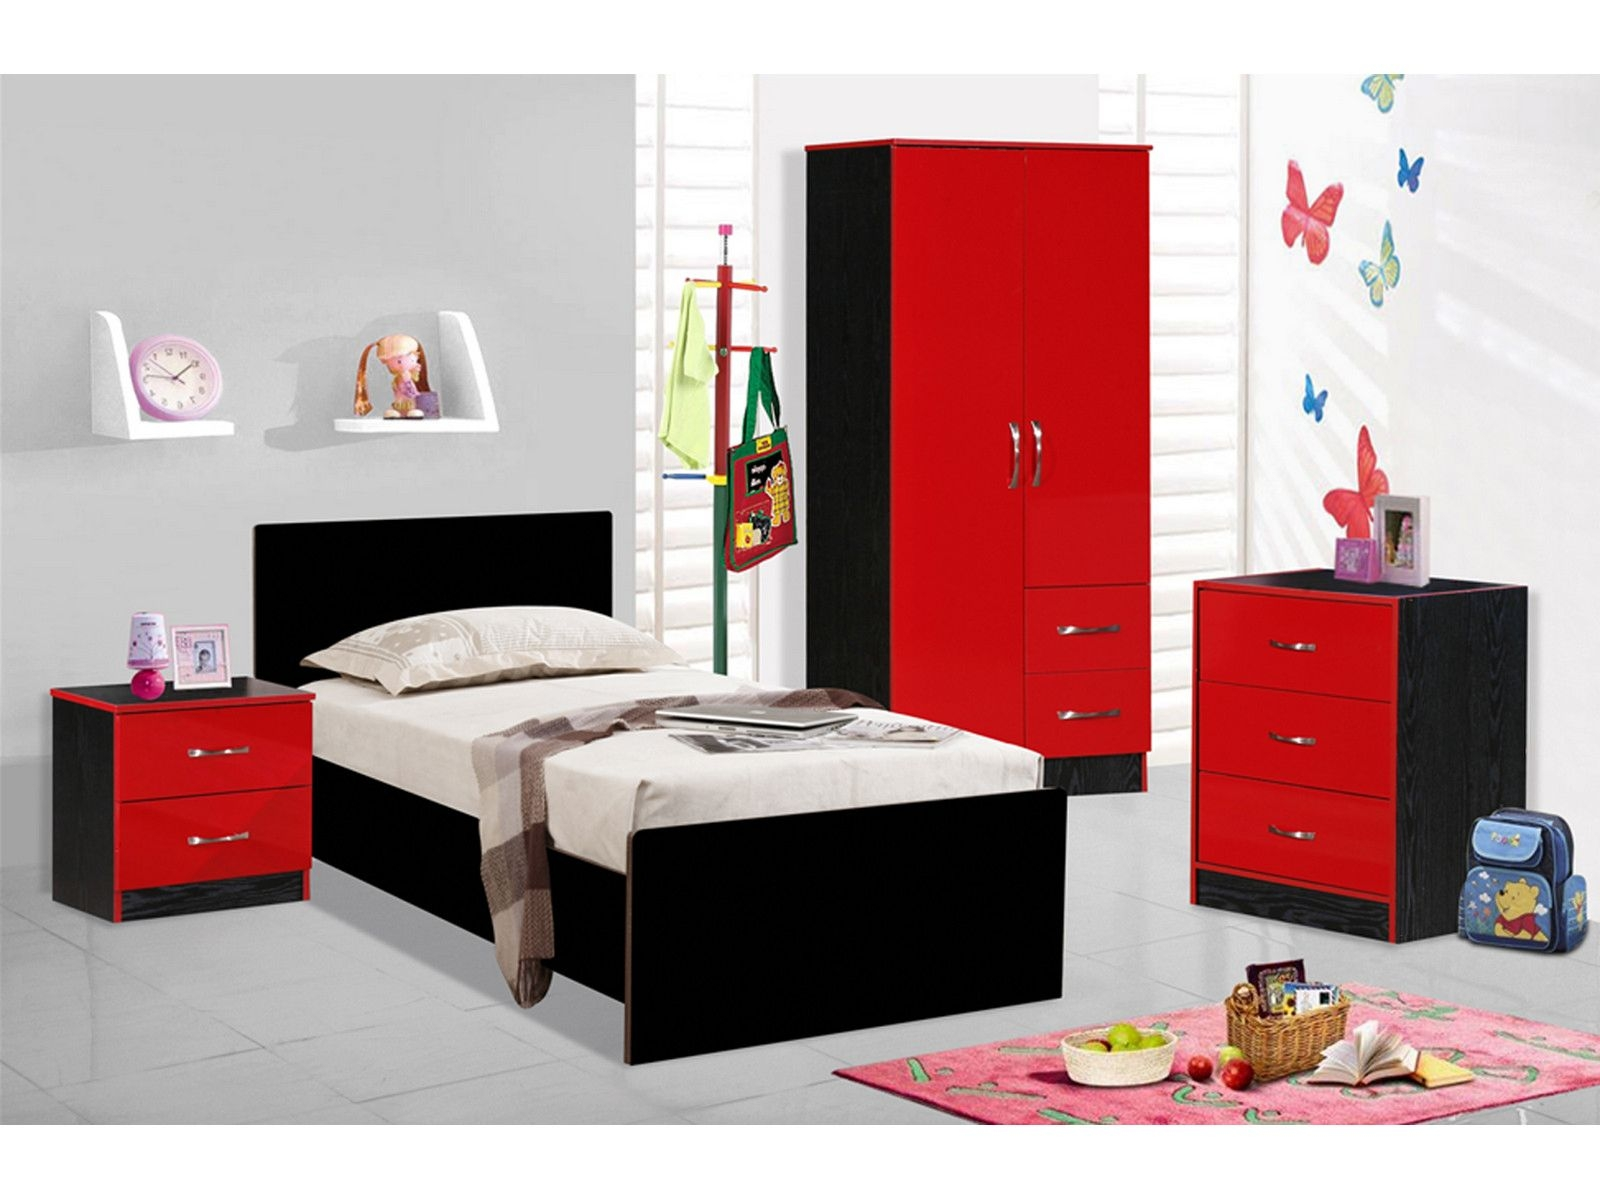 Best ... Ready Assembled High Gloss Bedroom Furniture Mark Cooper Research ... black high gloss bedroom furniture ready assembled